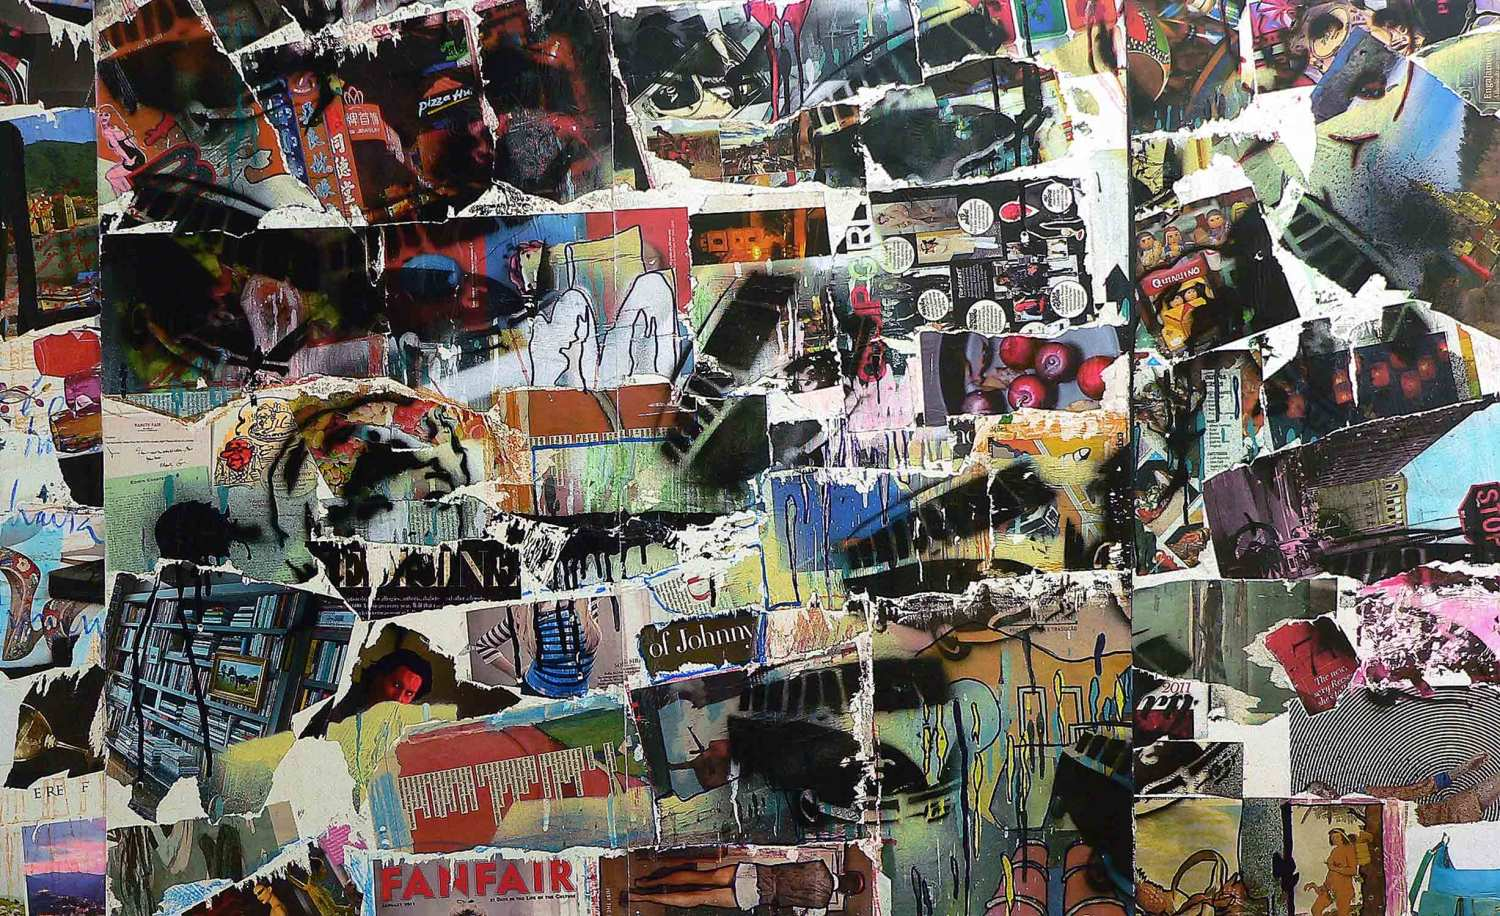 funfair - 80 x 130 cm - acrylic, spray paint, markers and collage on self adhesive vinyl mounted on canvas - 2011